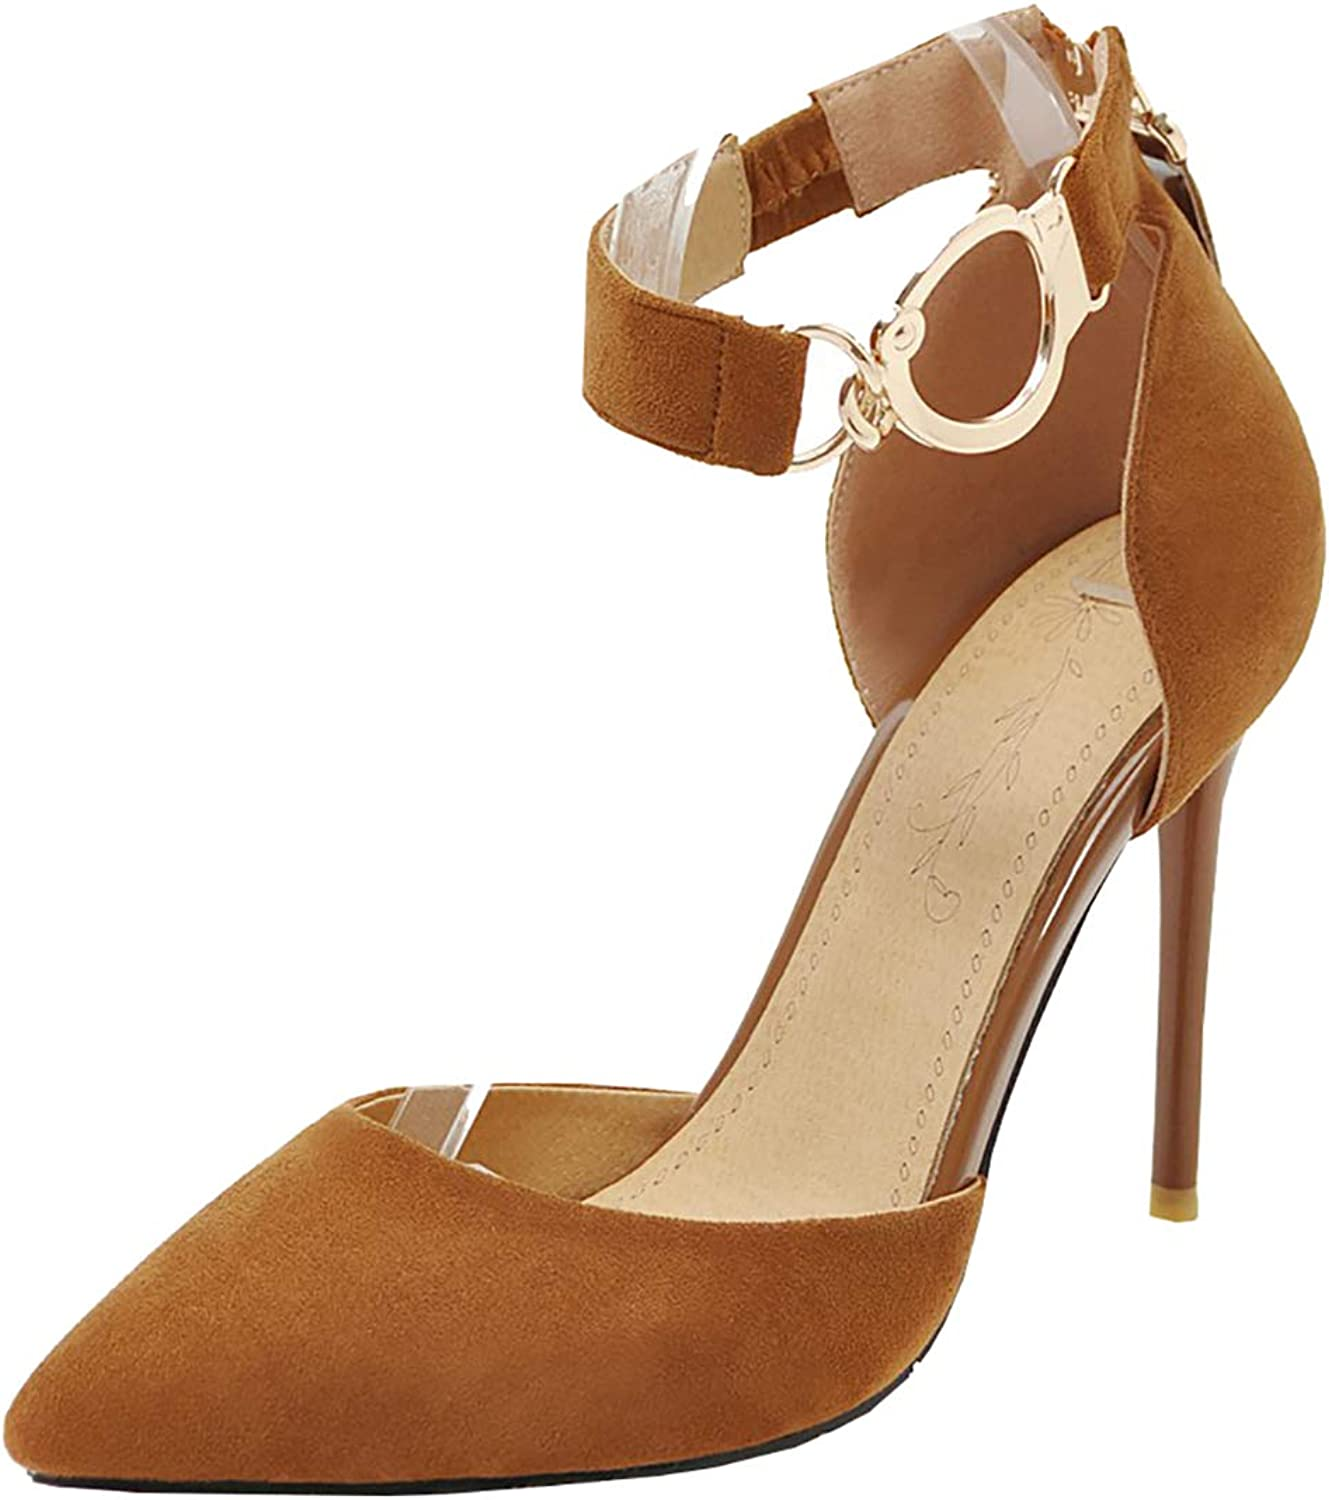 Artfaerie Womens Stiletto High Heel Pointed Toe Ankle Strap Thin Heels Pumps Sexy Court shoes with Mental Buckle